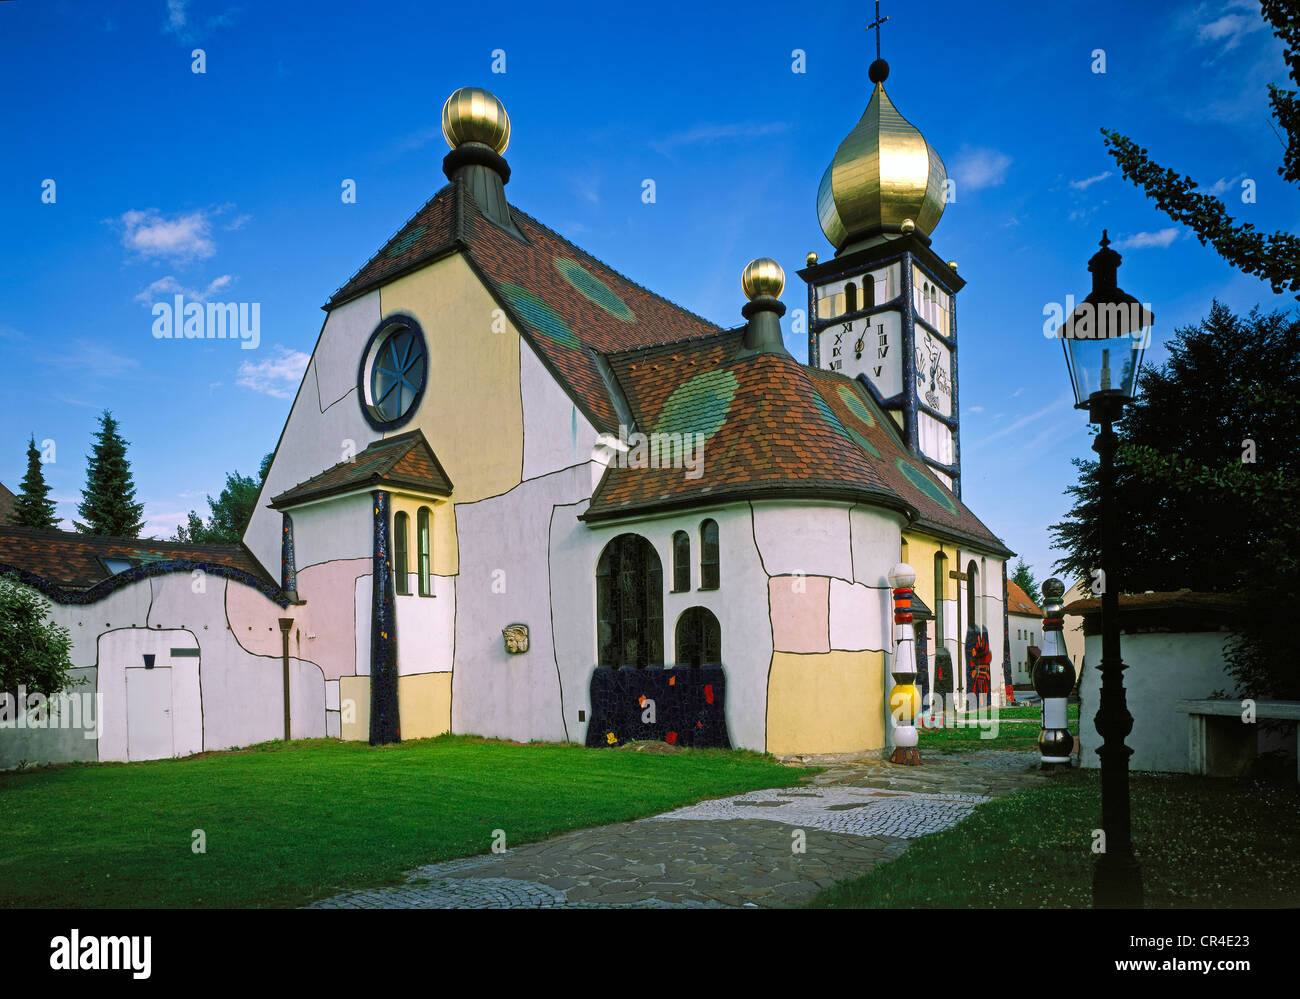 Parish church St. Barbara by Friedensreich Hundertwasser, 1988, Baernbach, Styria, Austria, Europe - Stock Image